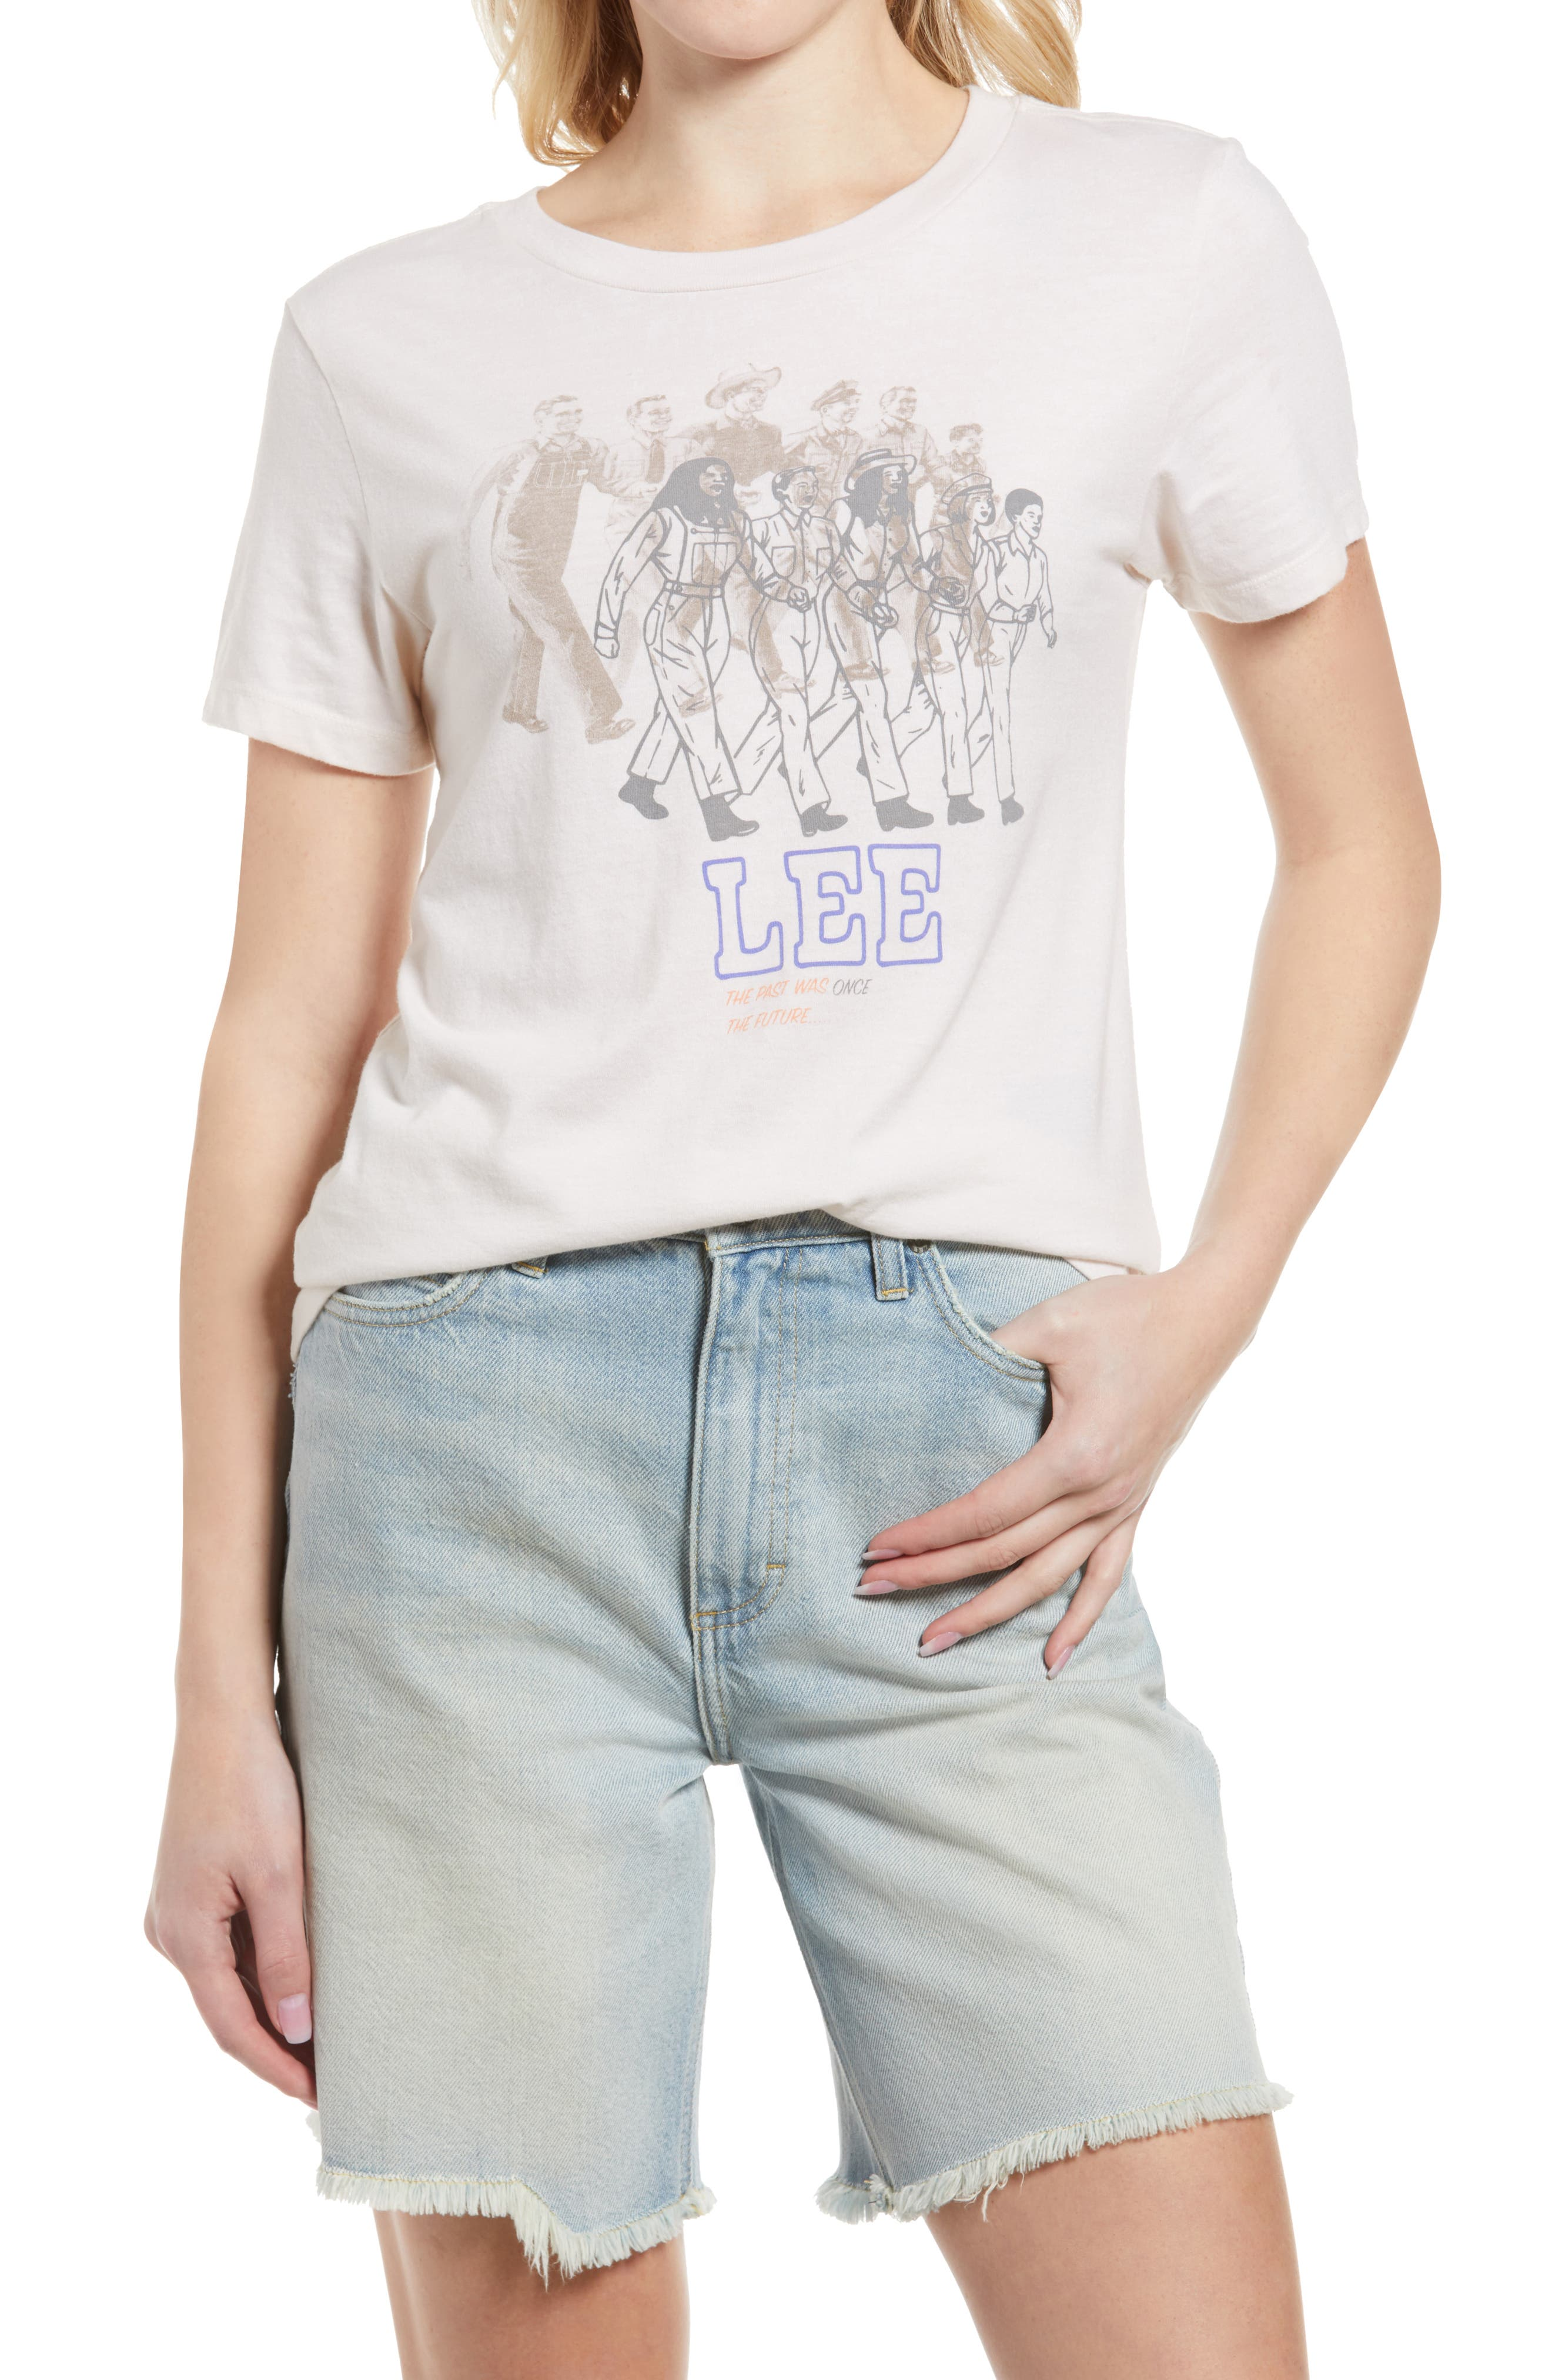 Marching Women Graphic Tee